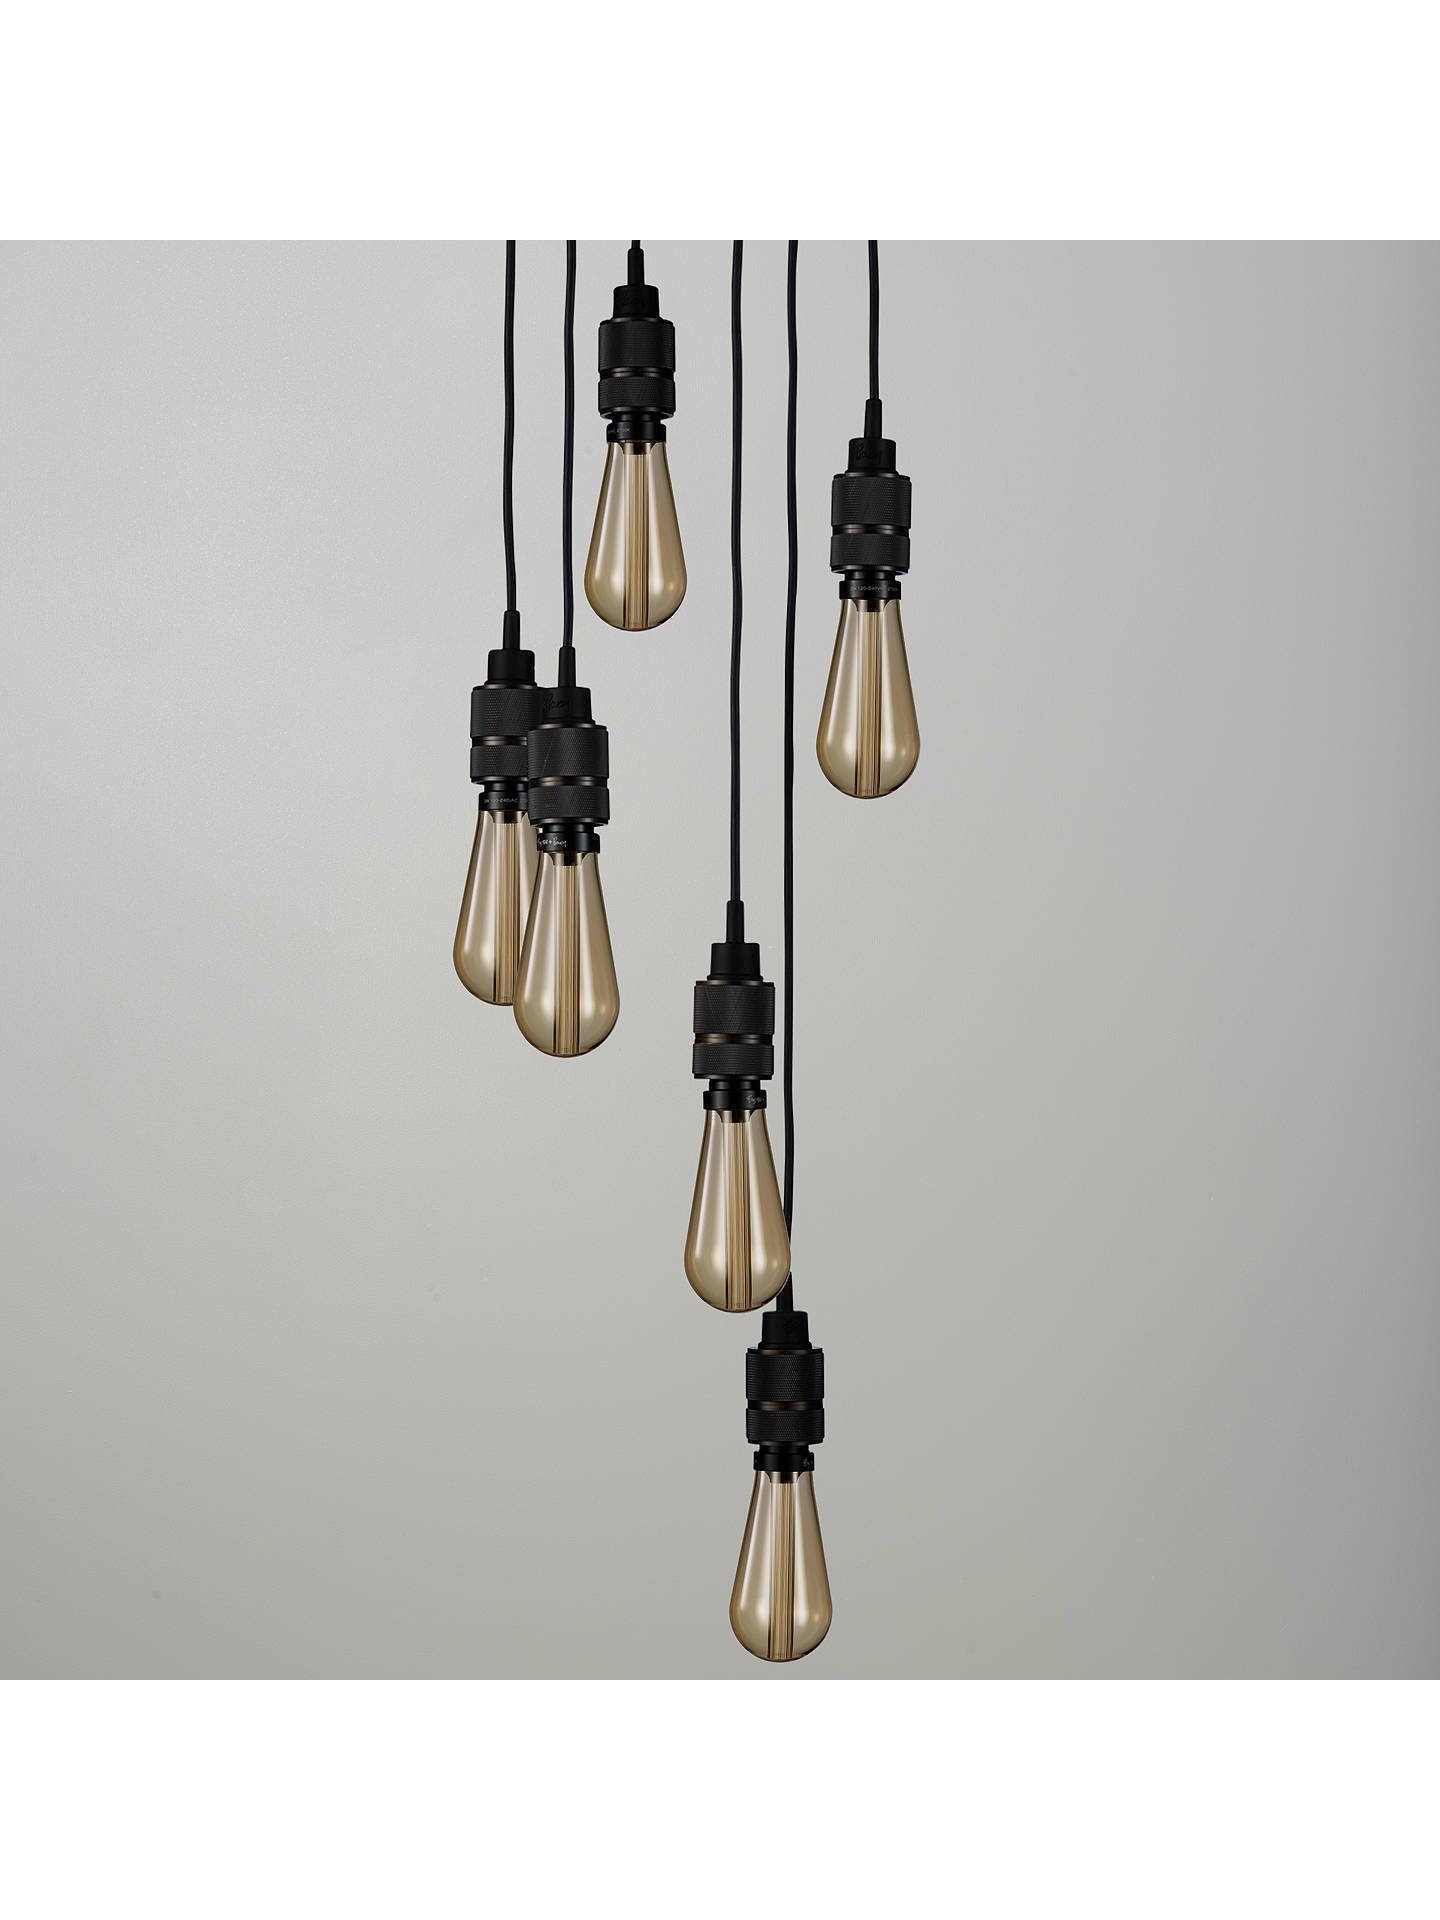 BuyBuster + Punch Hooked 6.0 Ceiling Light, Smoked Bronze Online at johnlewis.com